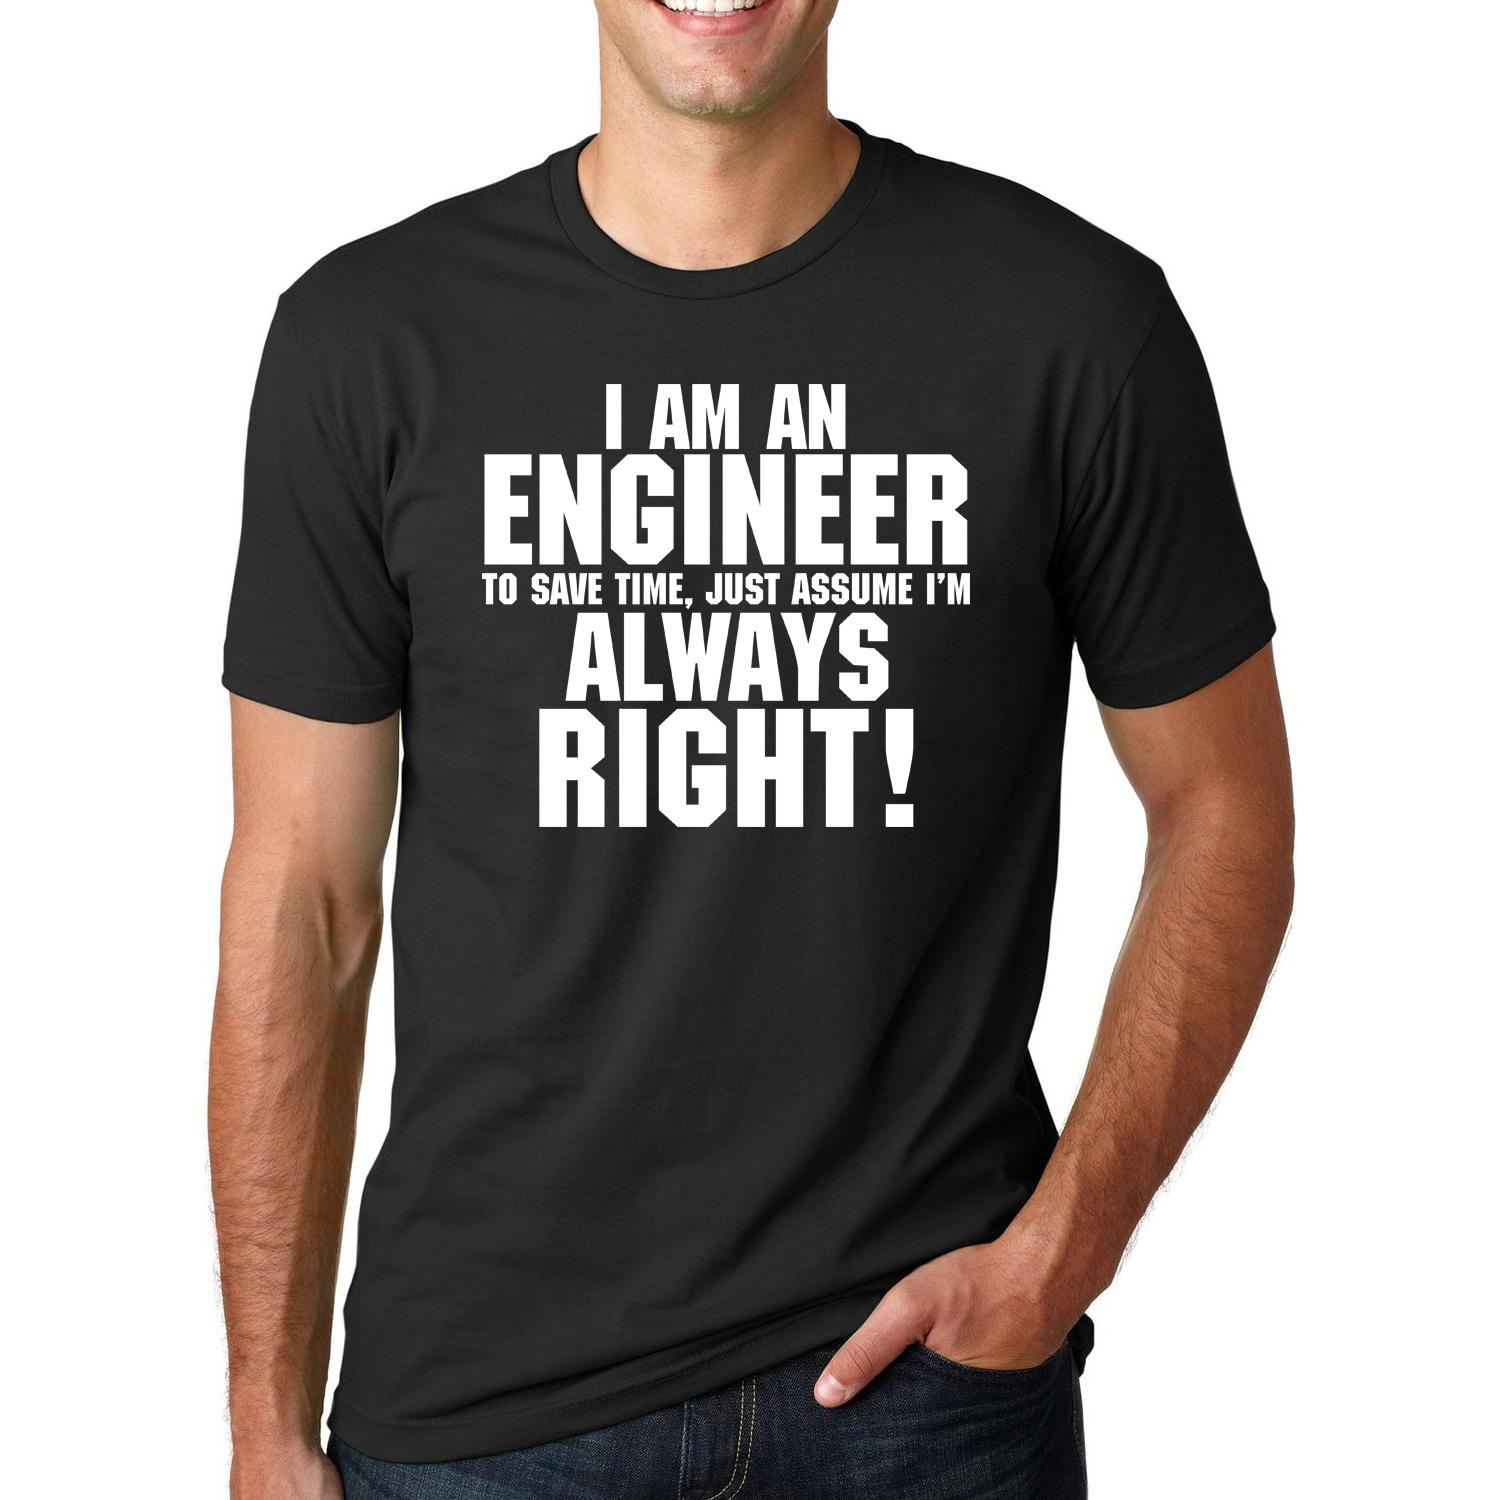 67deb903efe9ce I Am An Engineer Always Right Funny Slogan T Shirts For Man Hipsterfashion  Casual Streetwear Summer Men T Shirt Tops Tees Cool Tee Funny Graphic T  Shirts ...